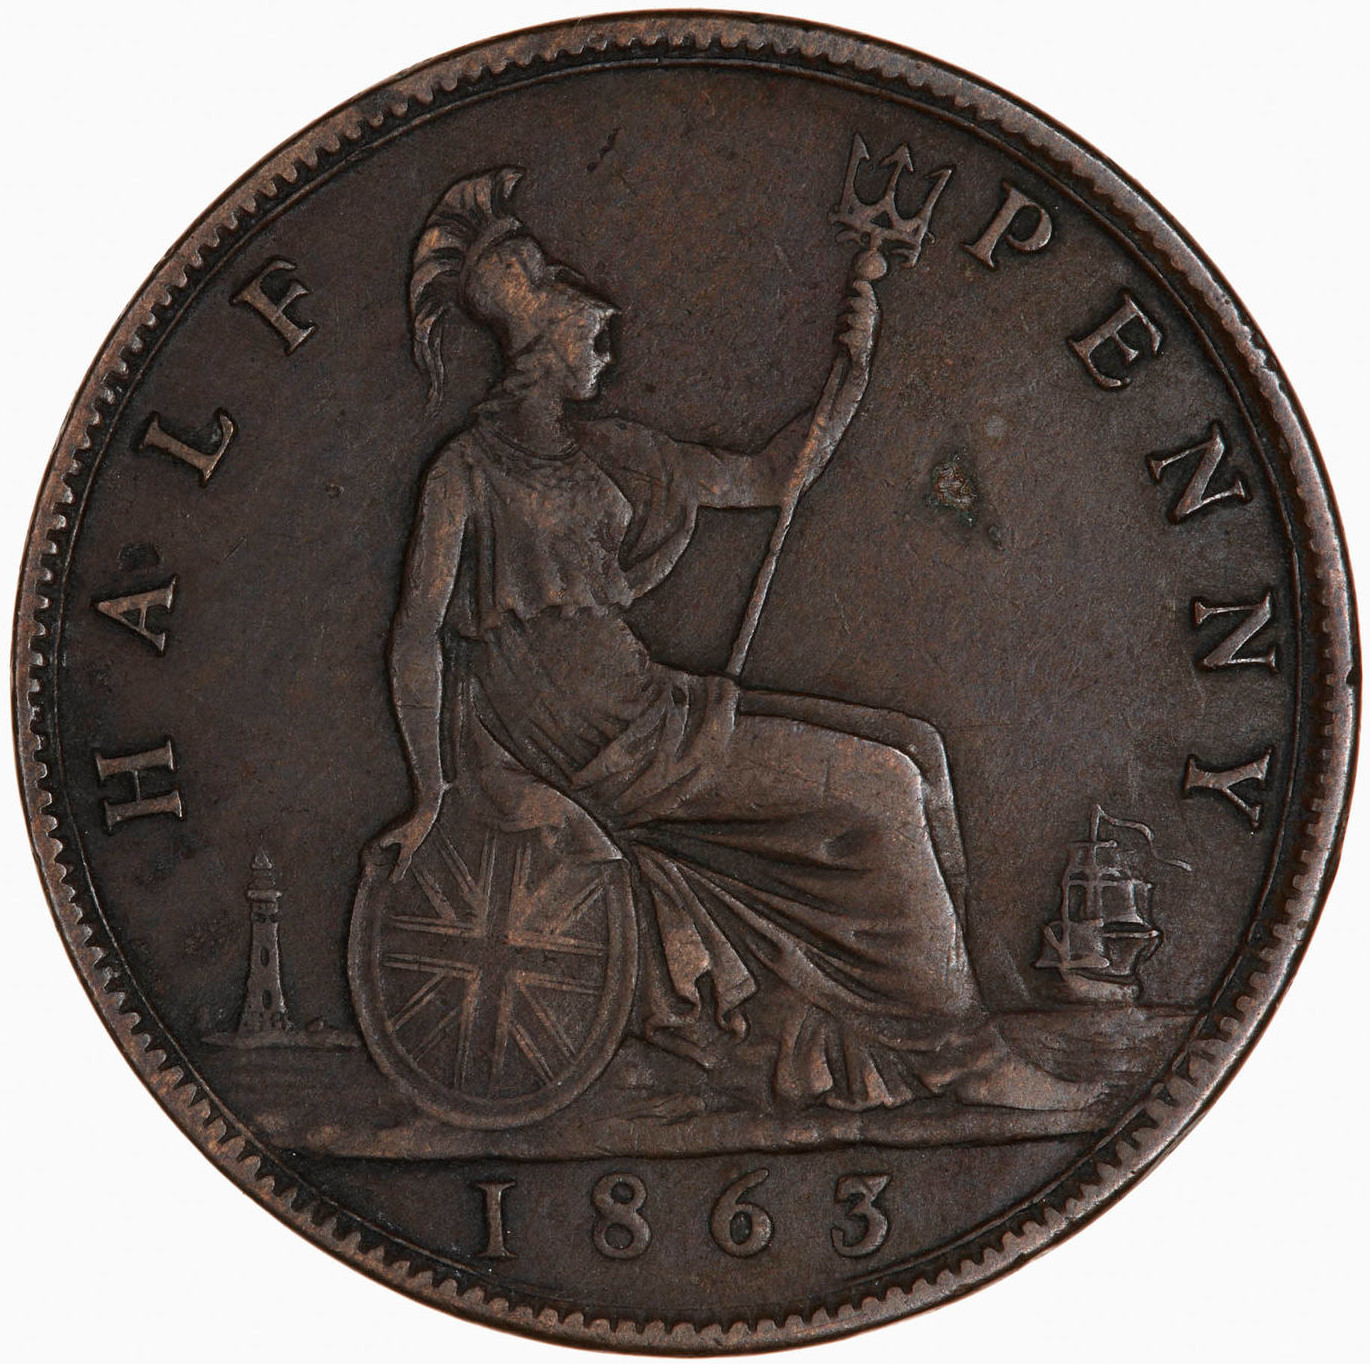 Halfpenny 1863: Photo Coin - Halfpenny, Queen Victoria, Great Britain, 1863